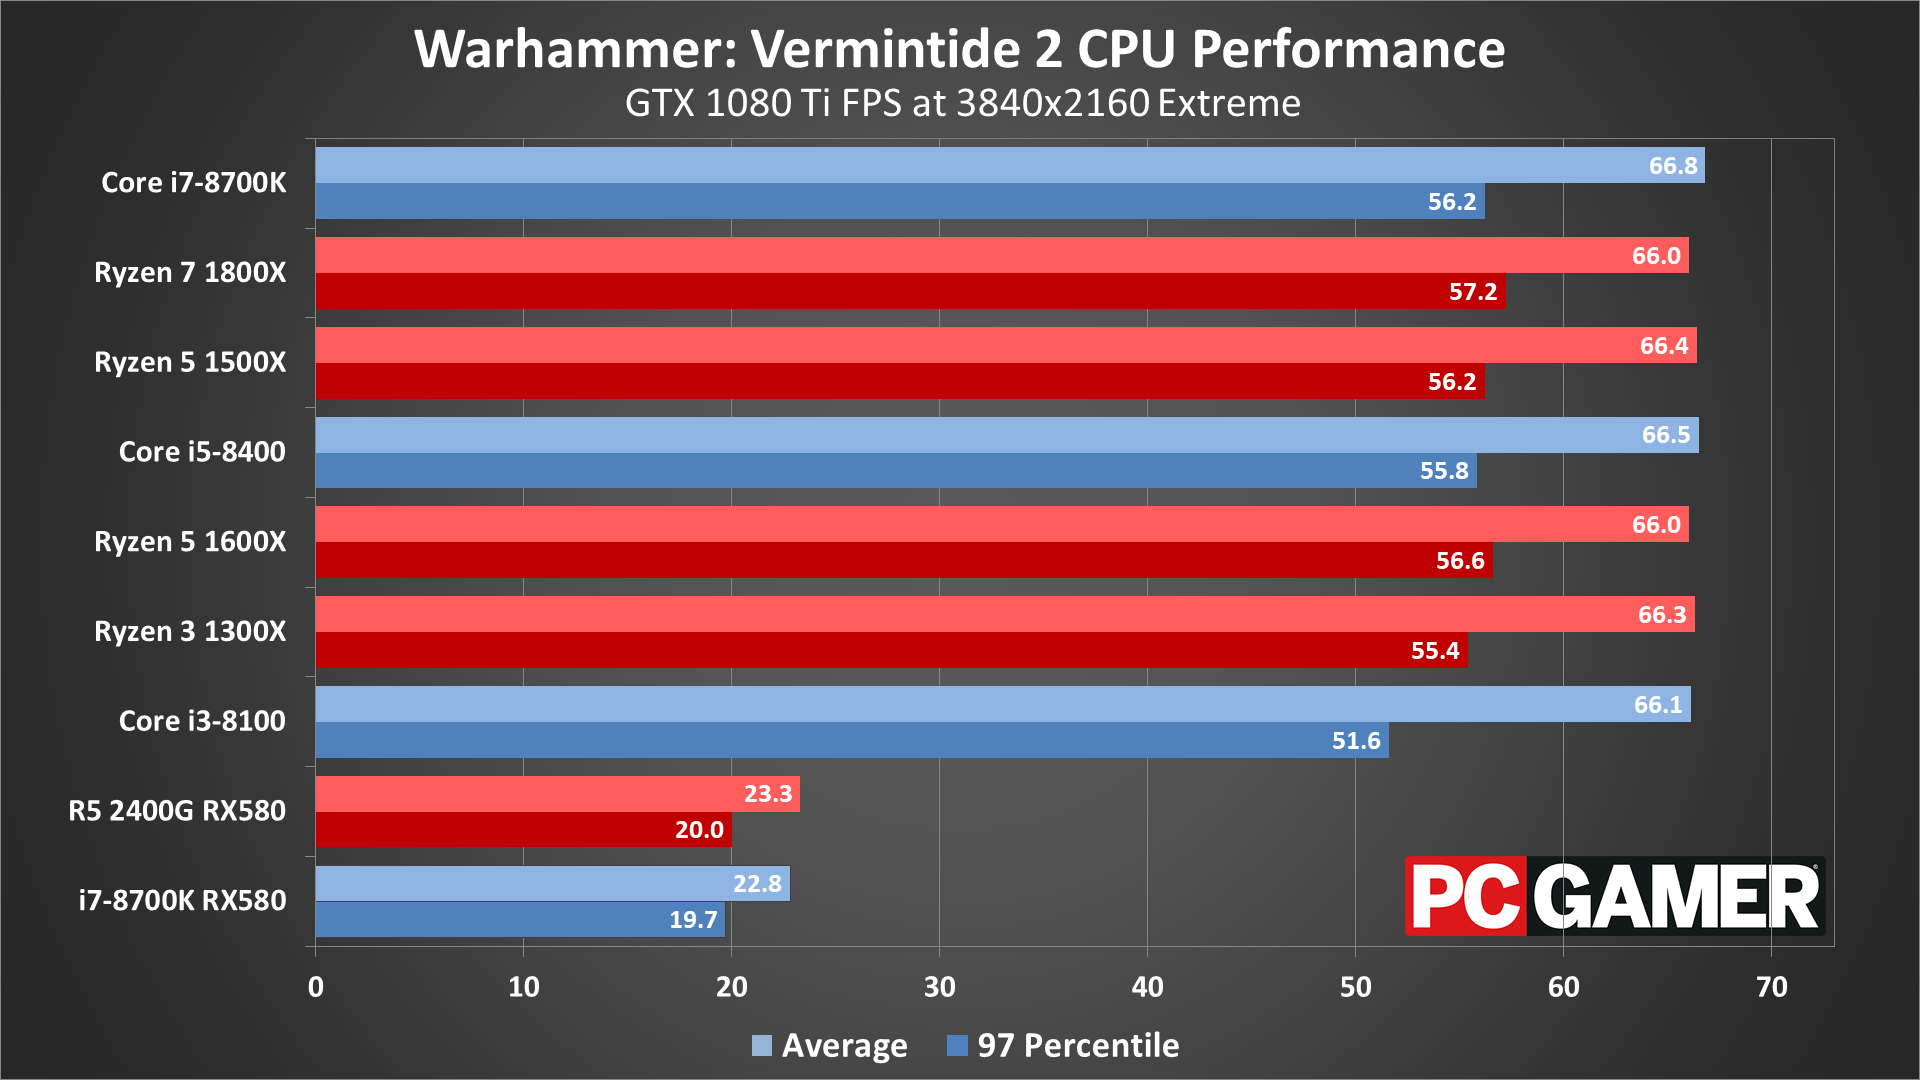 Warhammer: Vermintide 2 graphics settings and performance